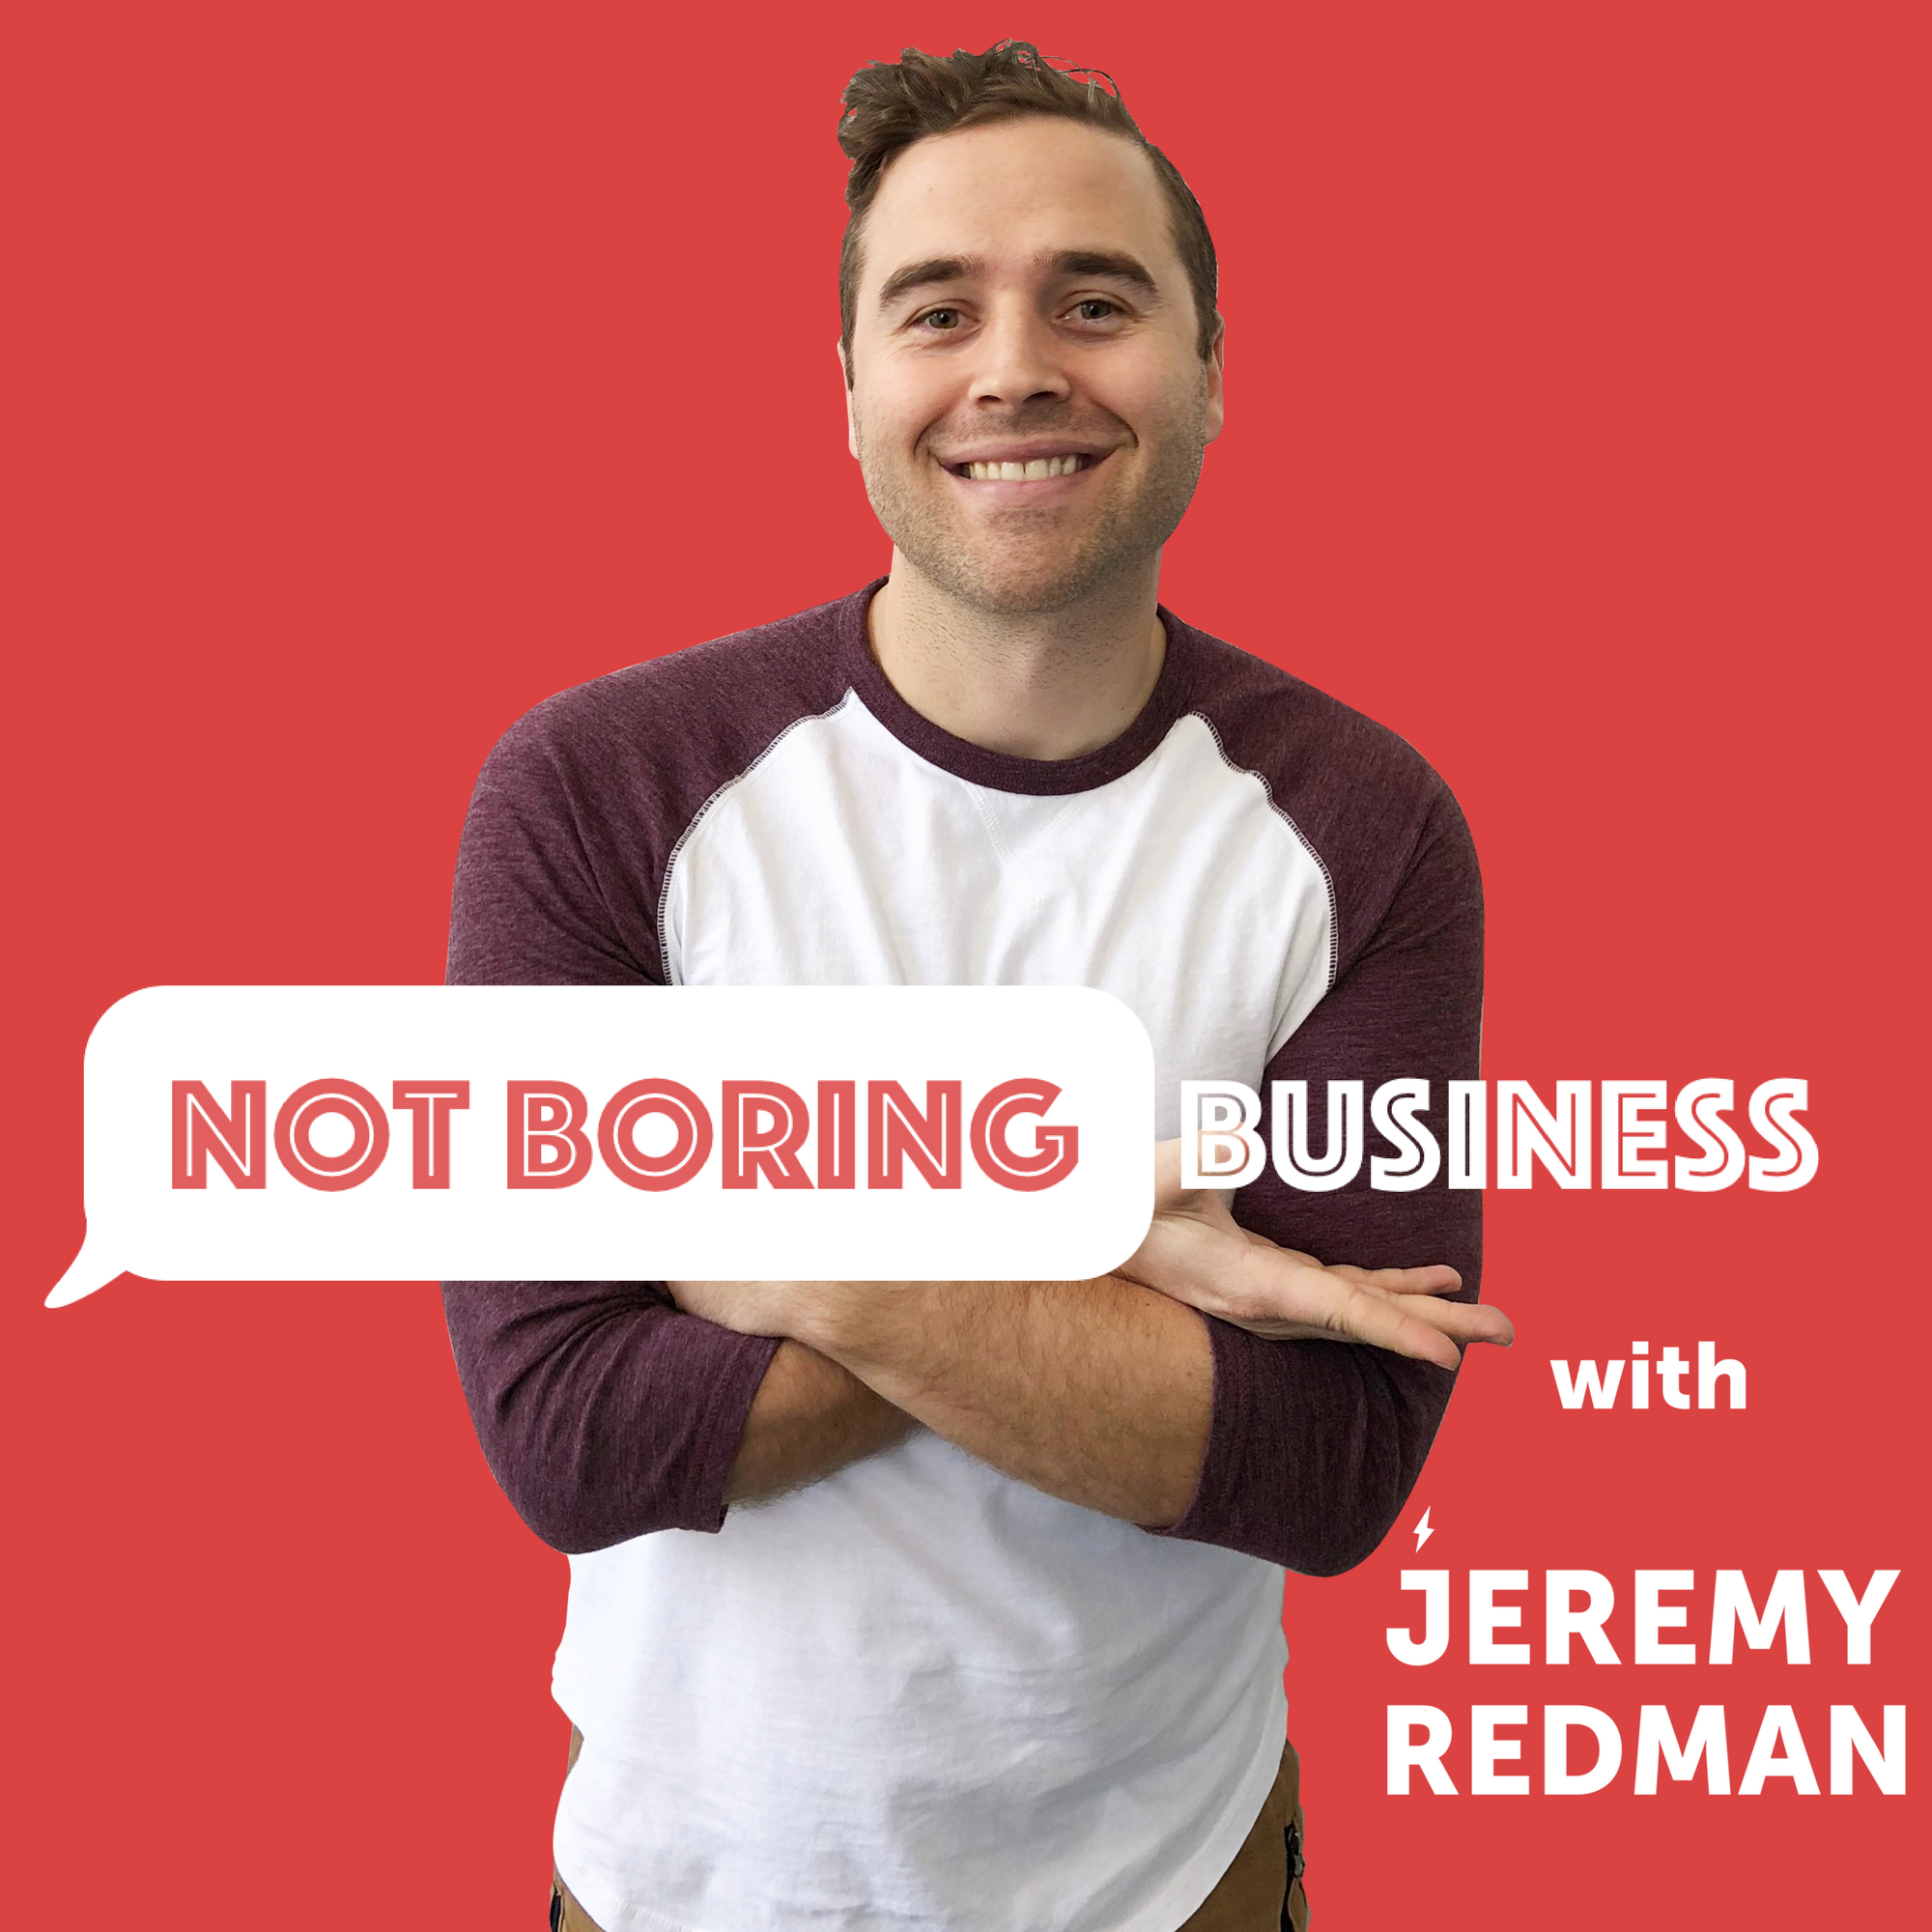 Not 20boring 20business 20podcast 20 2